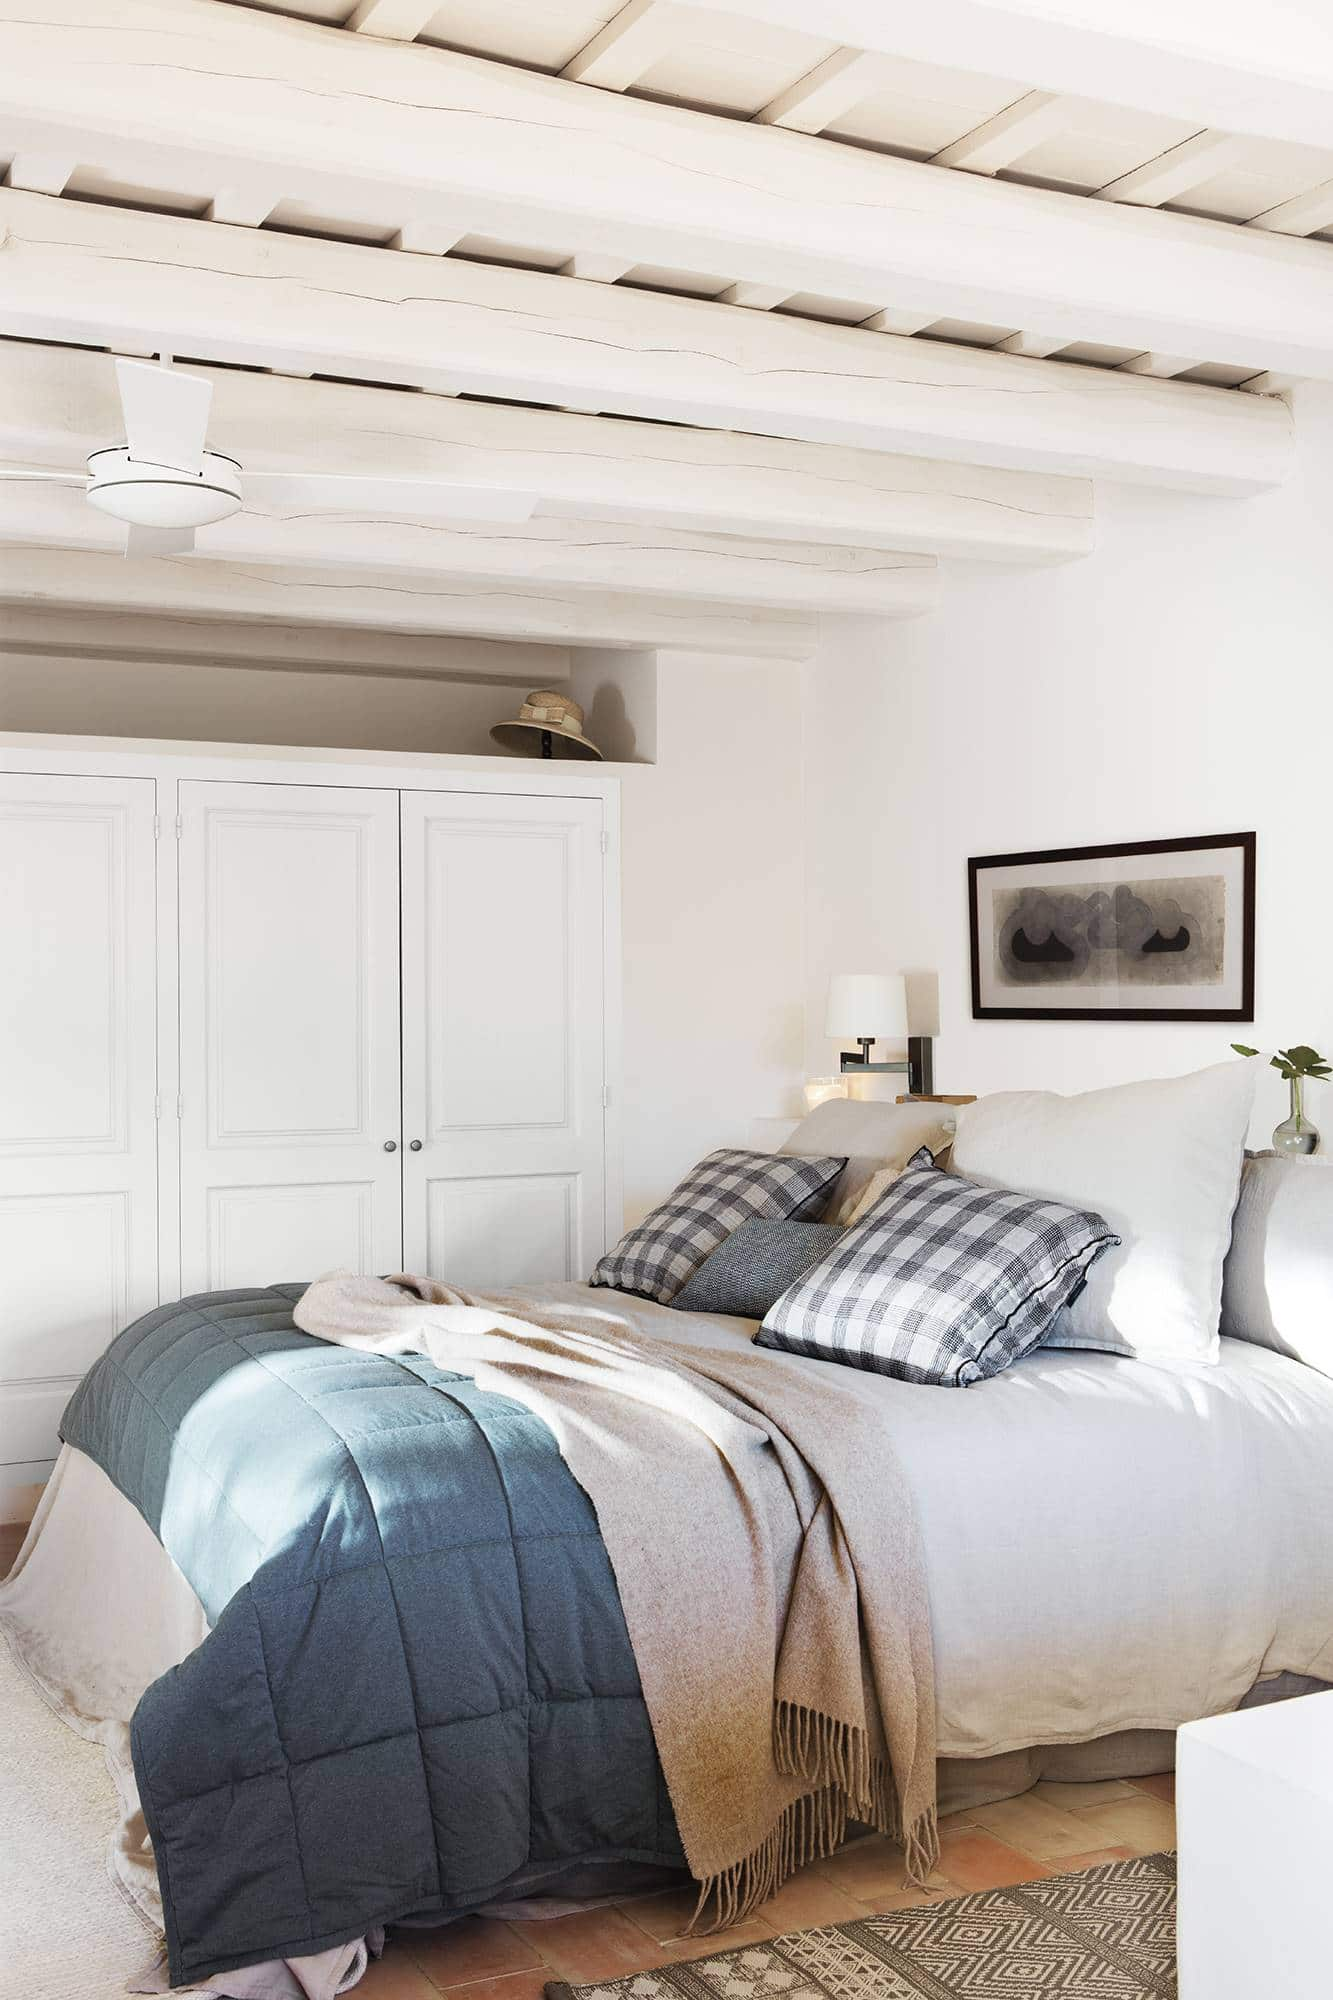 this is a bedroom with storage